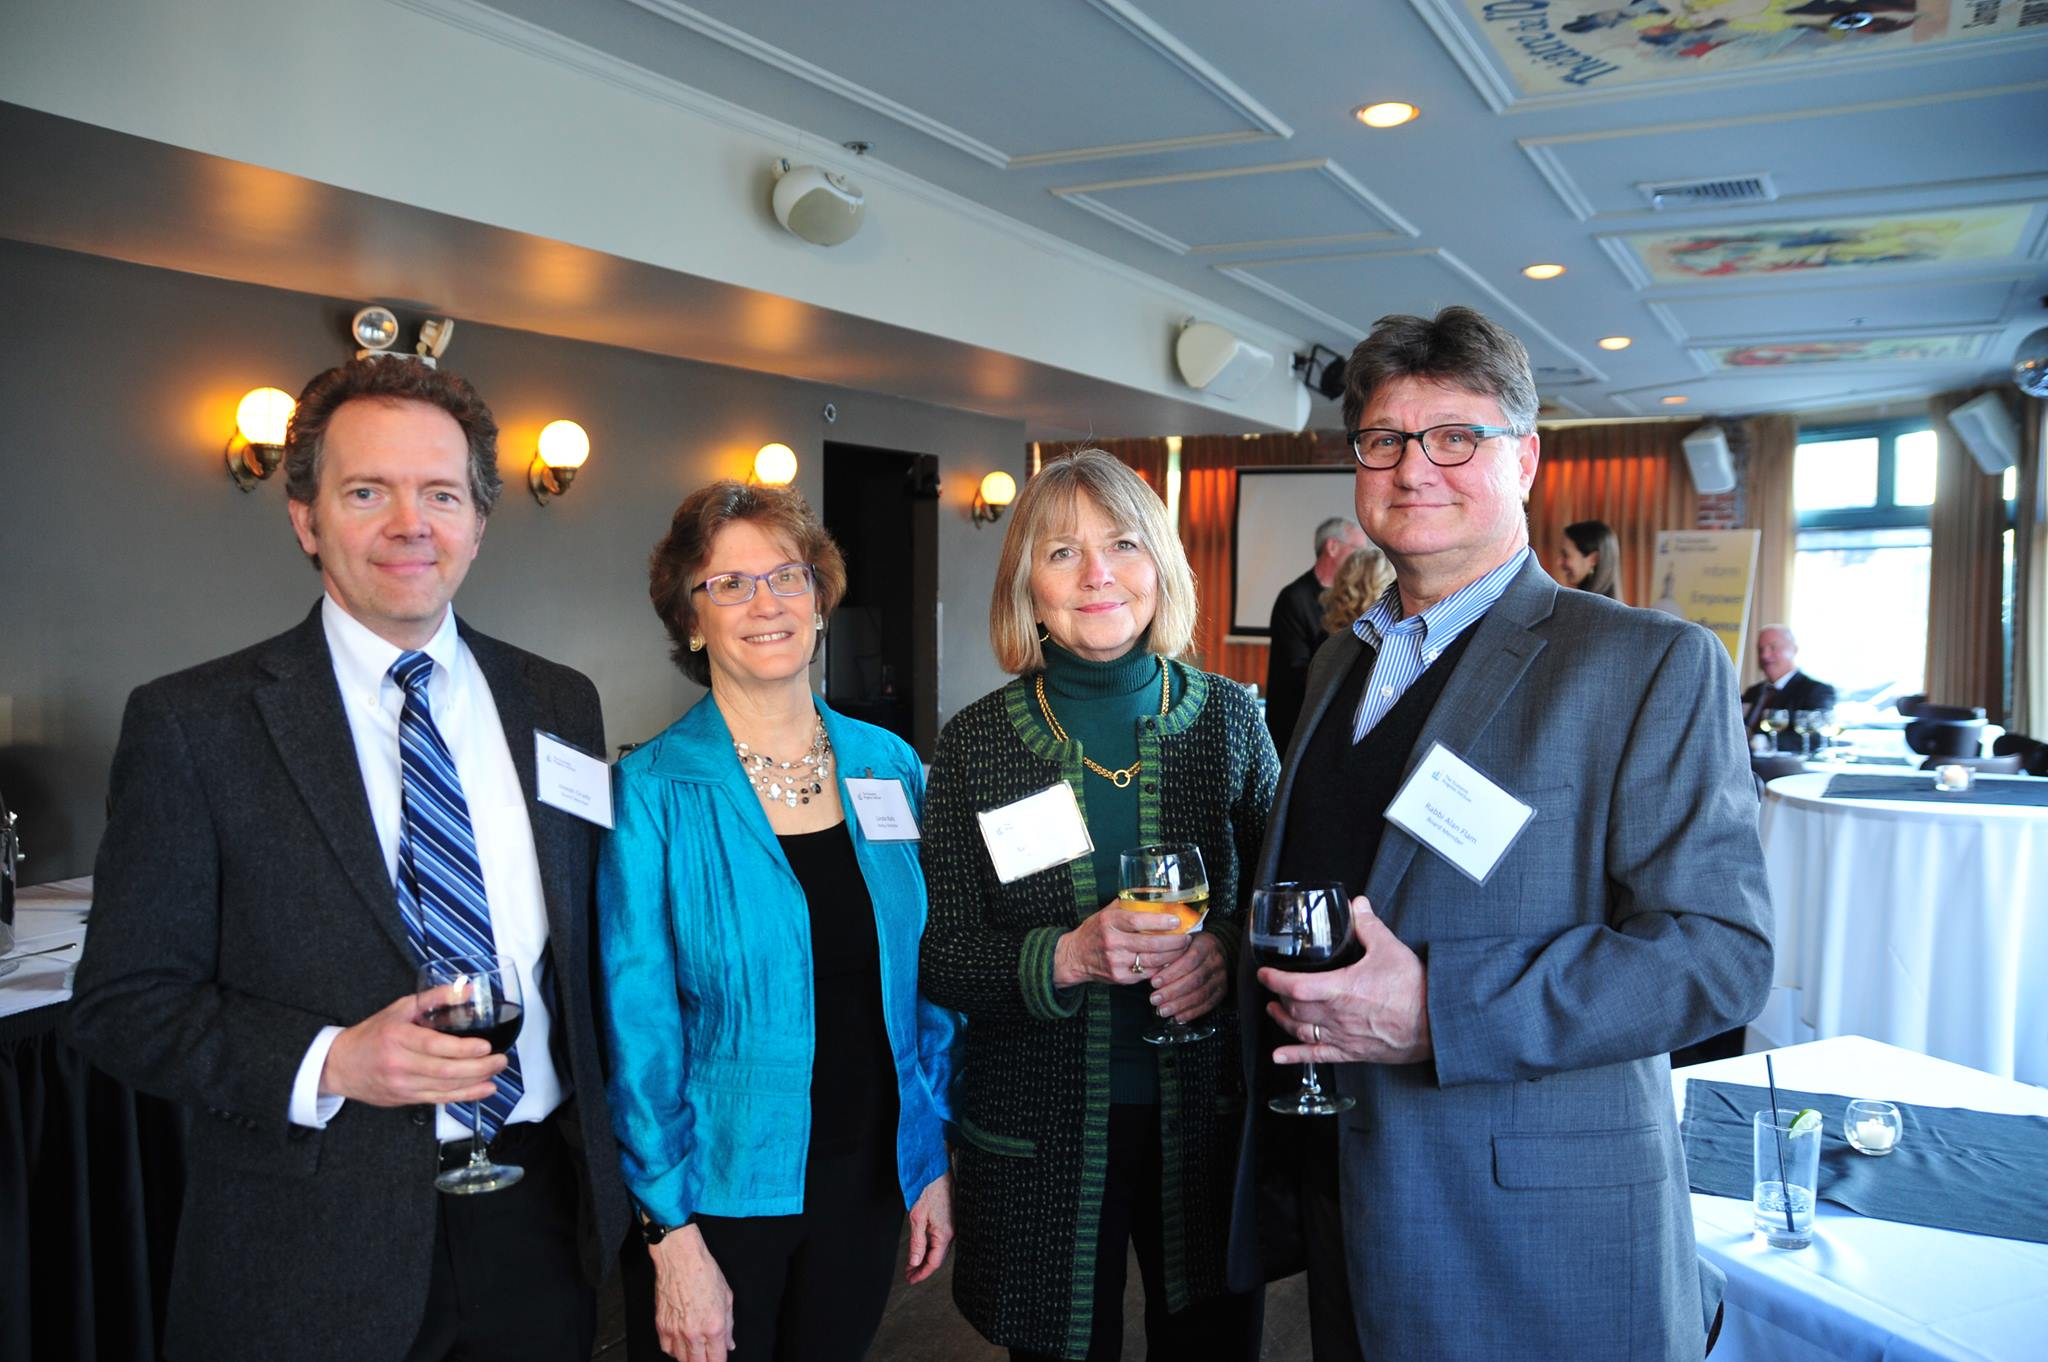 Pictured: Board members Joe Grady and Alan Flam, with Linda  Katz and Sally Strachan, past board member.